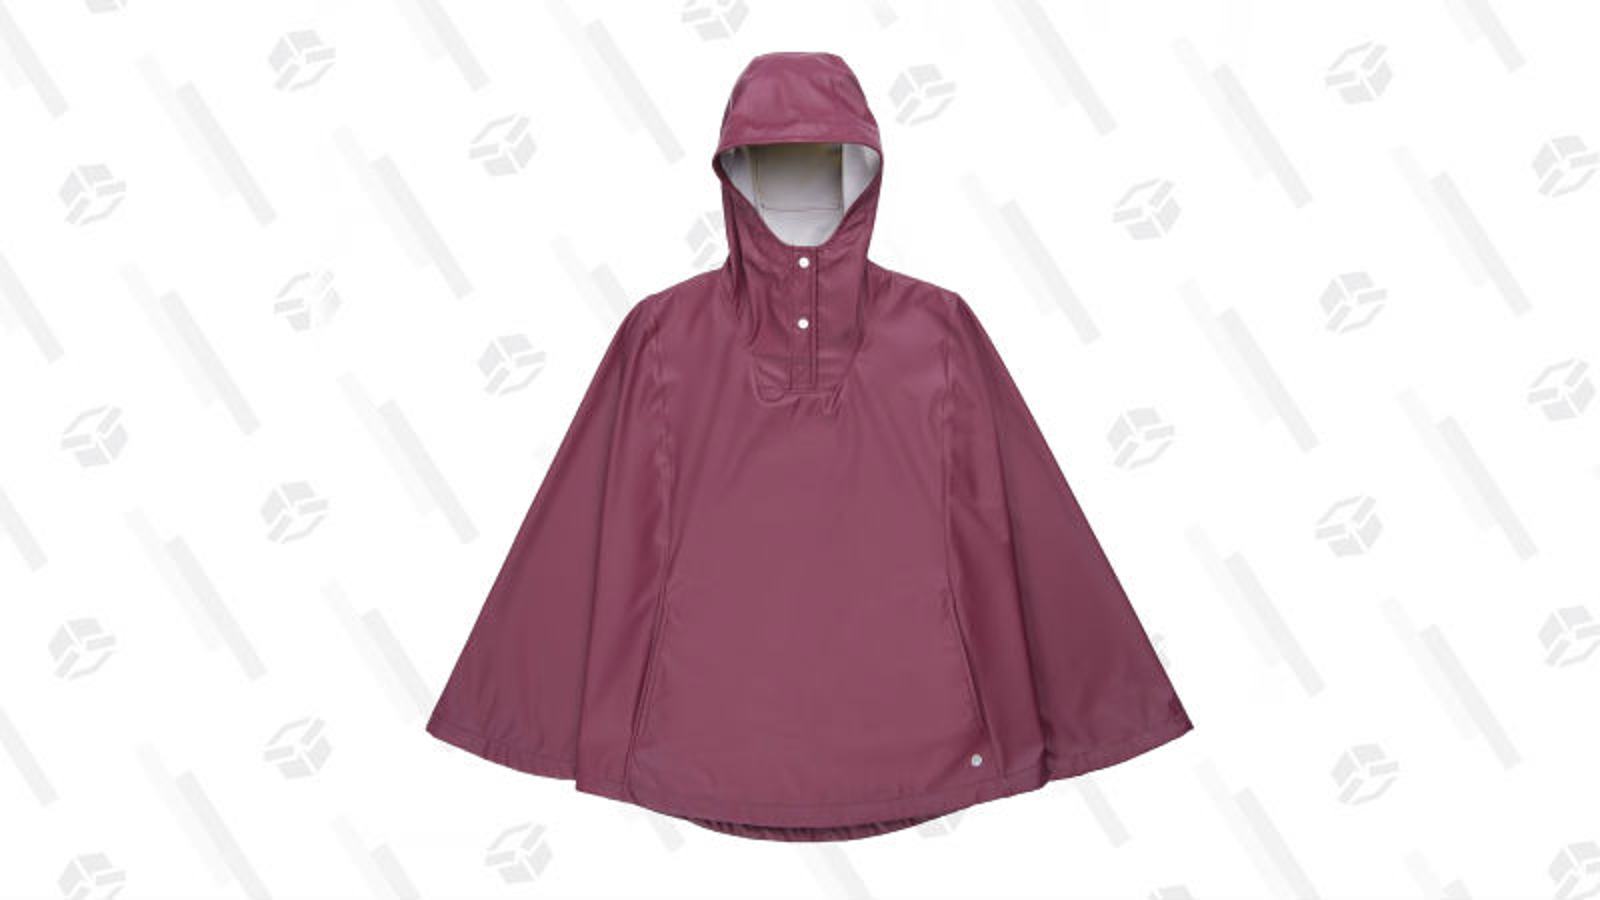 A Light Rain Jacket Rainwear Poncho | Herschel  If you're spending the day hiking through the rain forest or going zip lining, you should be prepared for the chance of a little rain and pack a jacket just in case. You'll want something lightweight and breathable, since you're in a tropical place, and the temperature is going to be pretty warm. Try a lightweight fancy poncho, so that you feel like you're still getting some air without getting soaked.